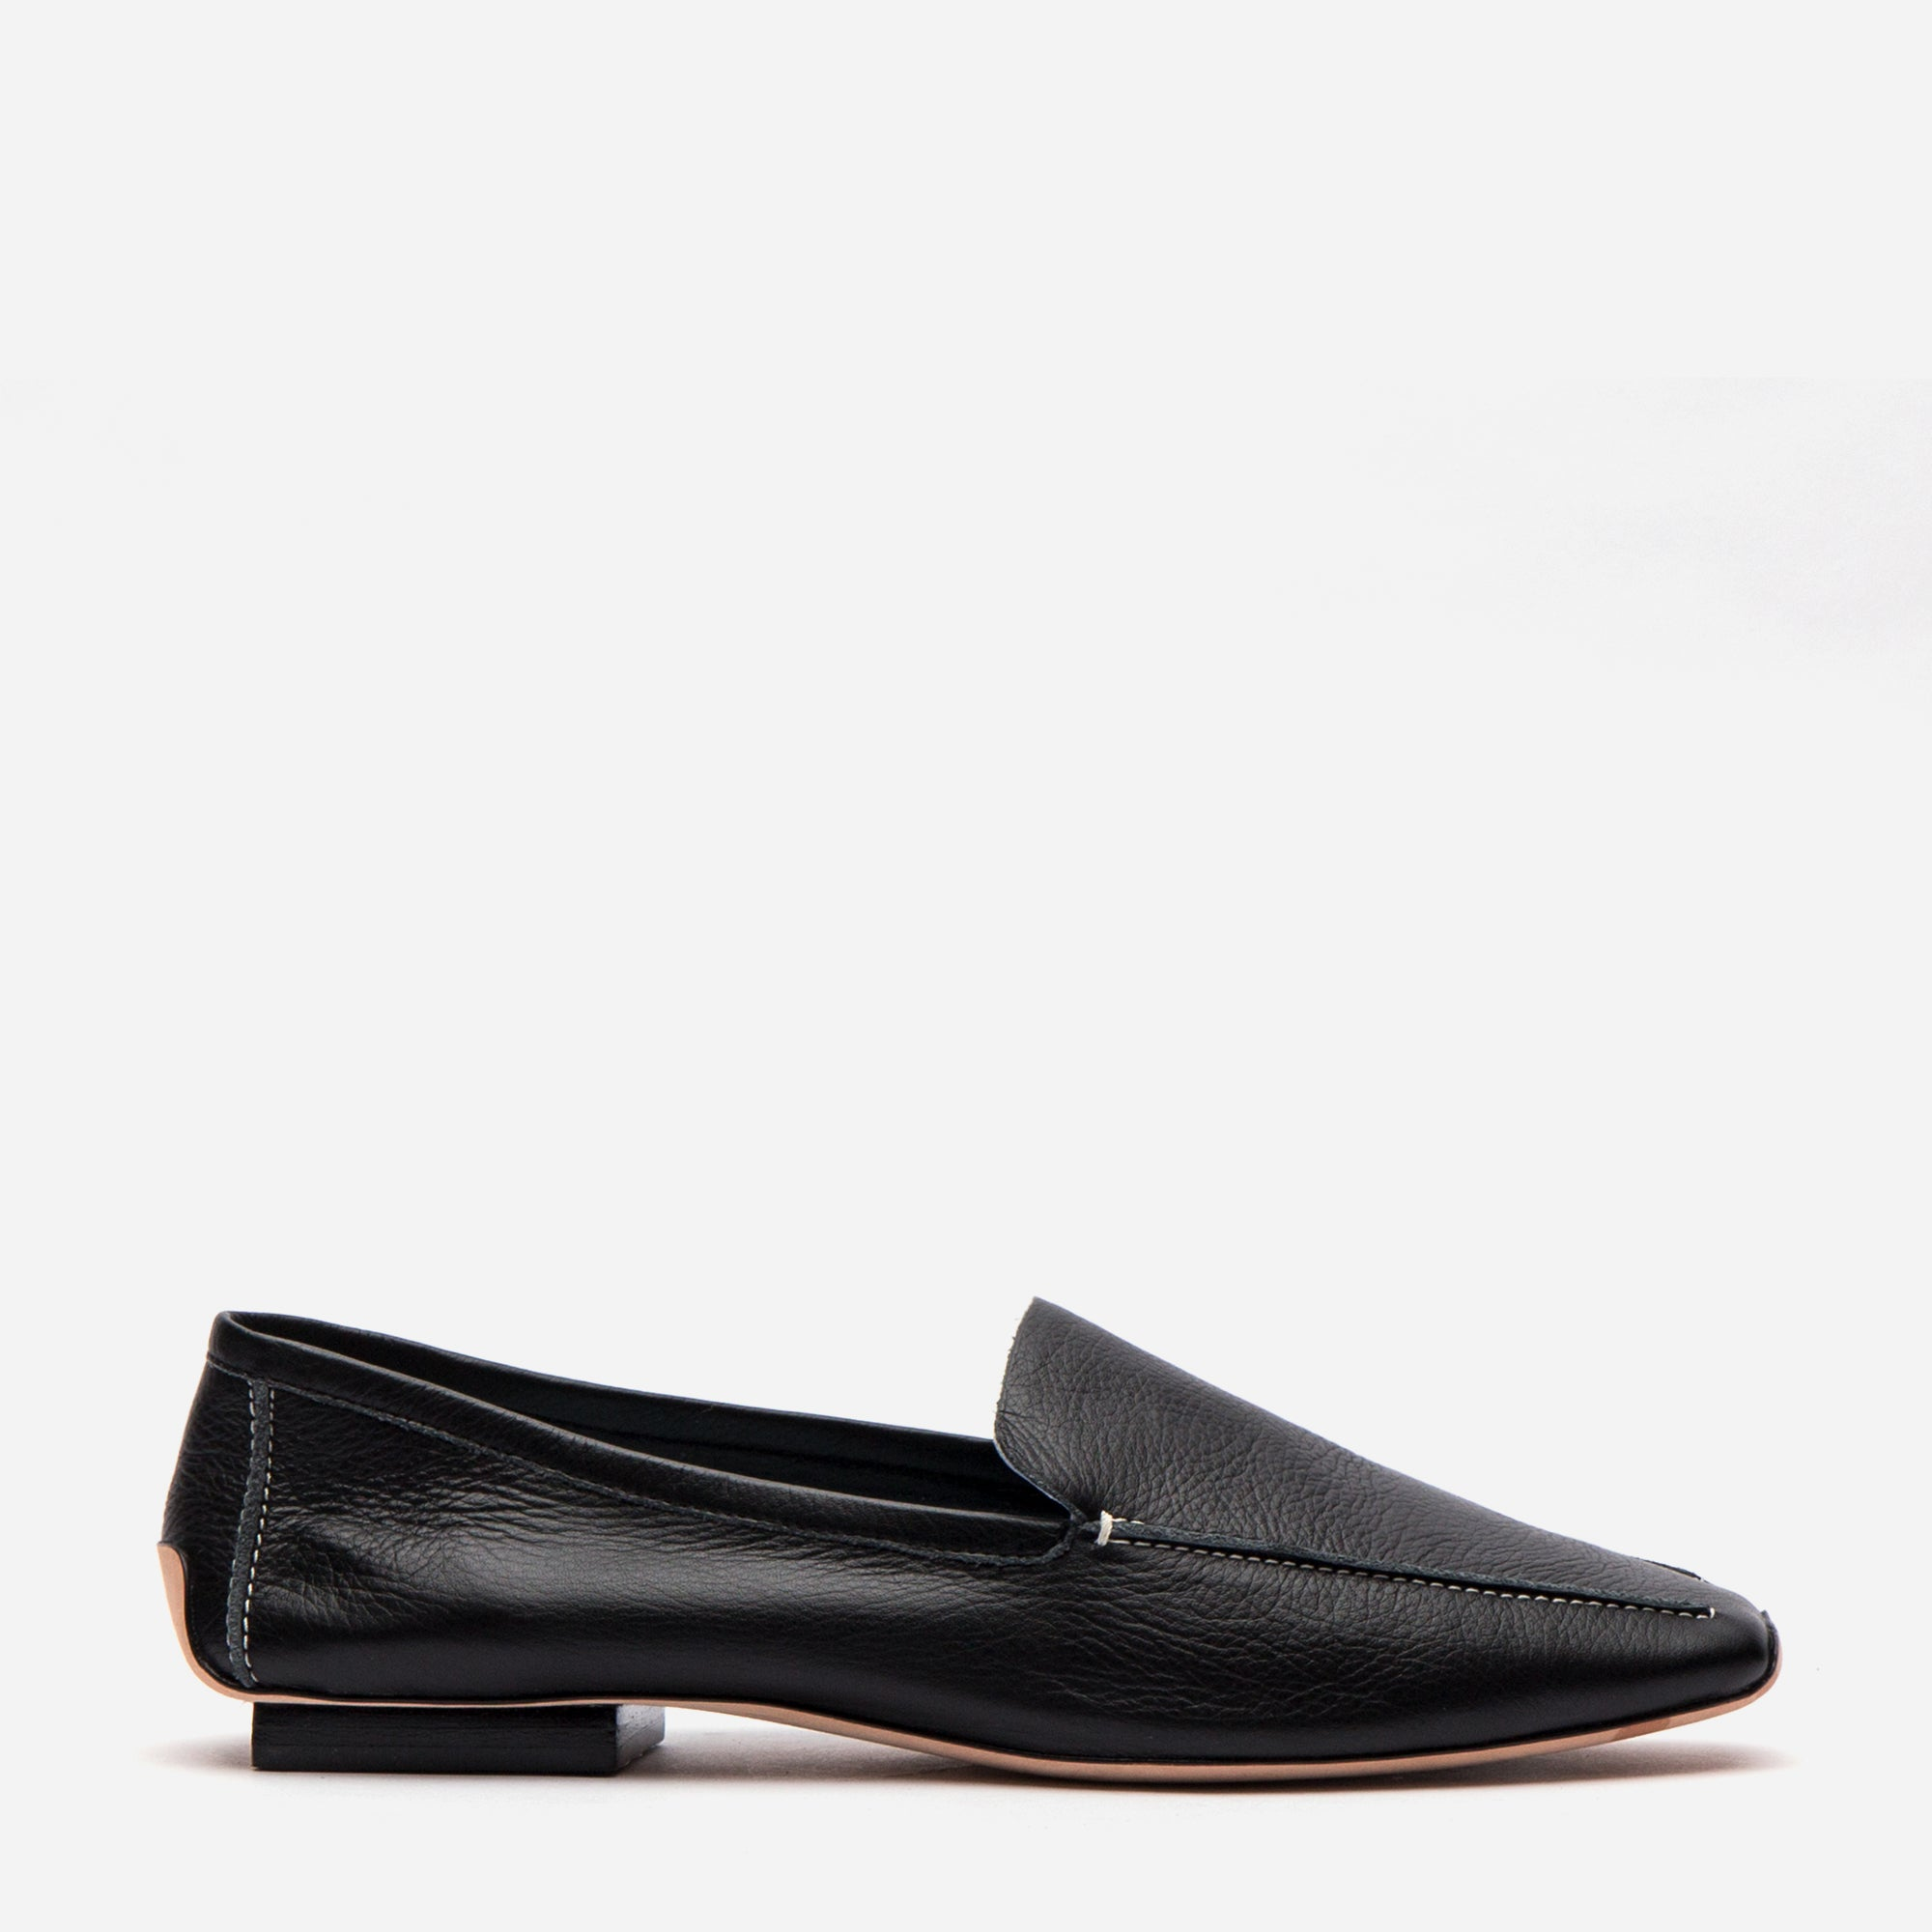 Elyce Loafer Black Leather